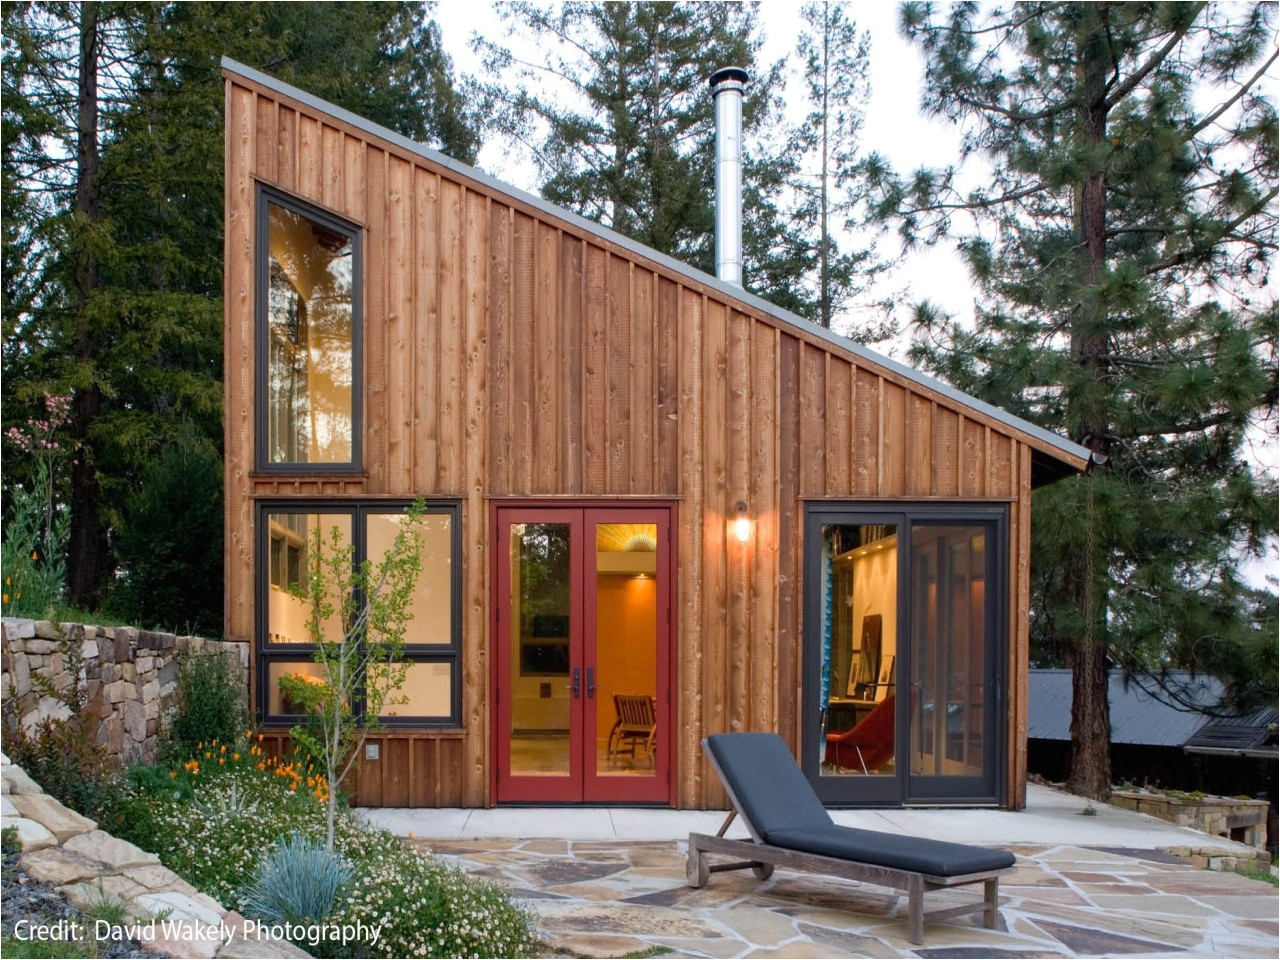 Small Home Plans0 Square Feet Tiny House Plans 800 Sq Ft